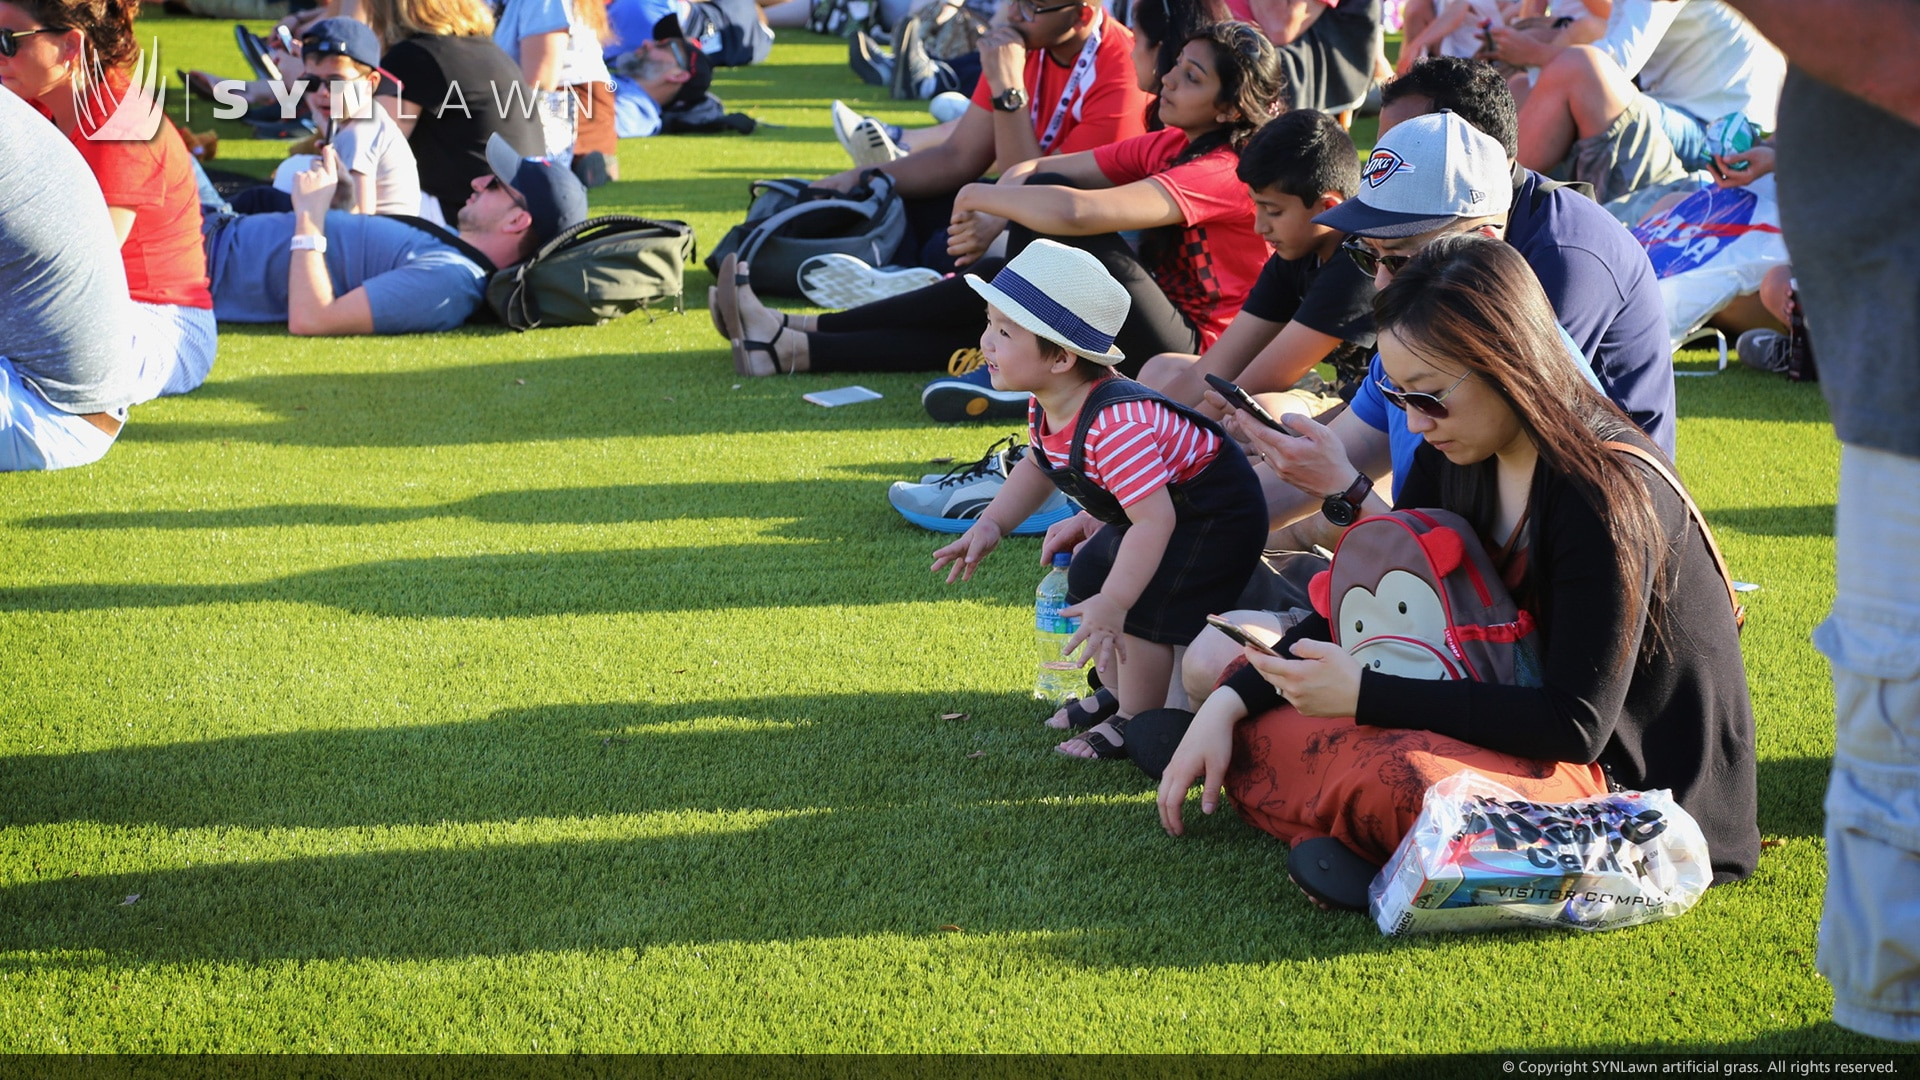 image of SYNLawn artificial grass at the Kennedy Space Center